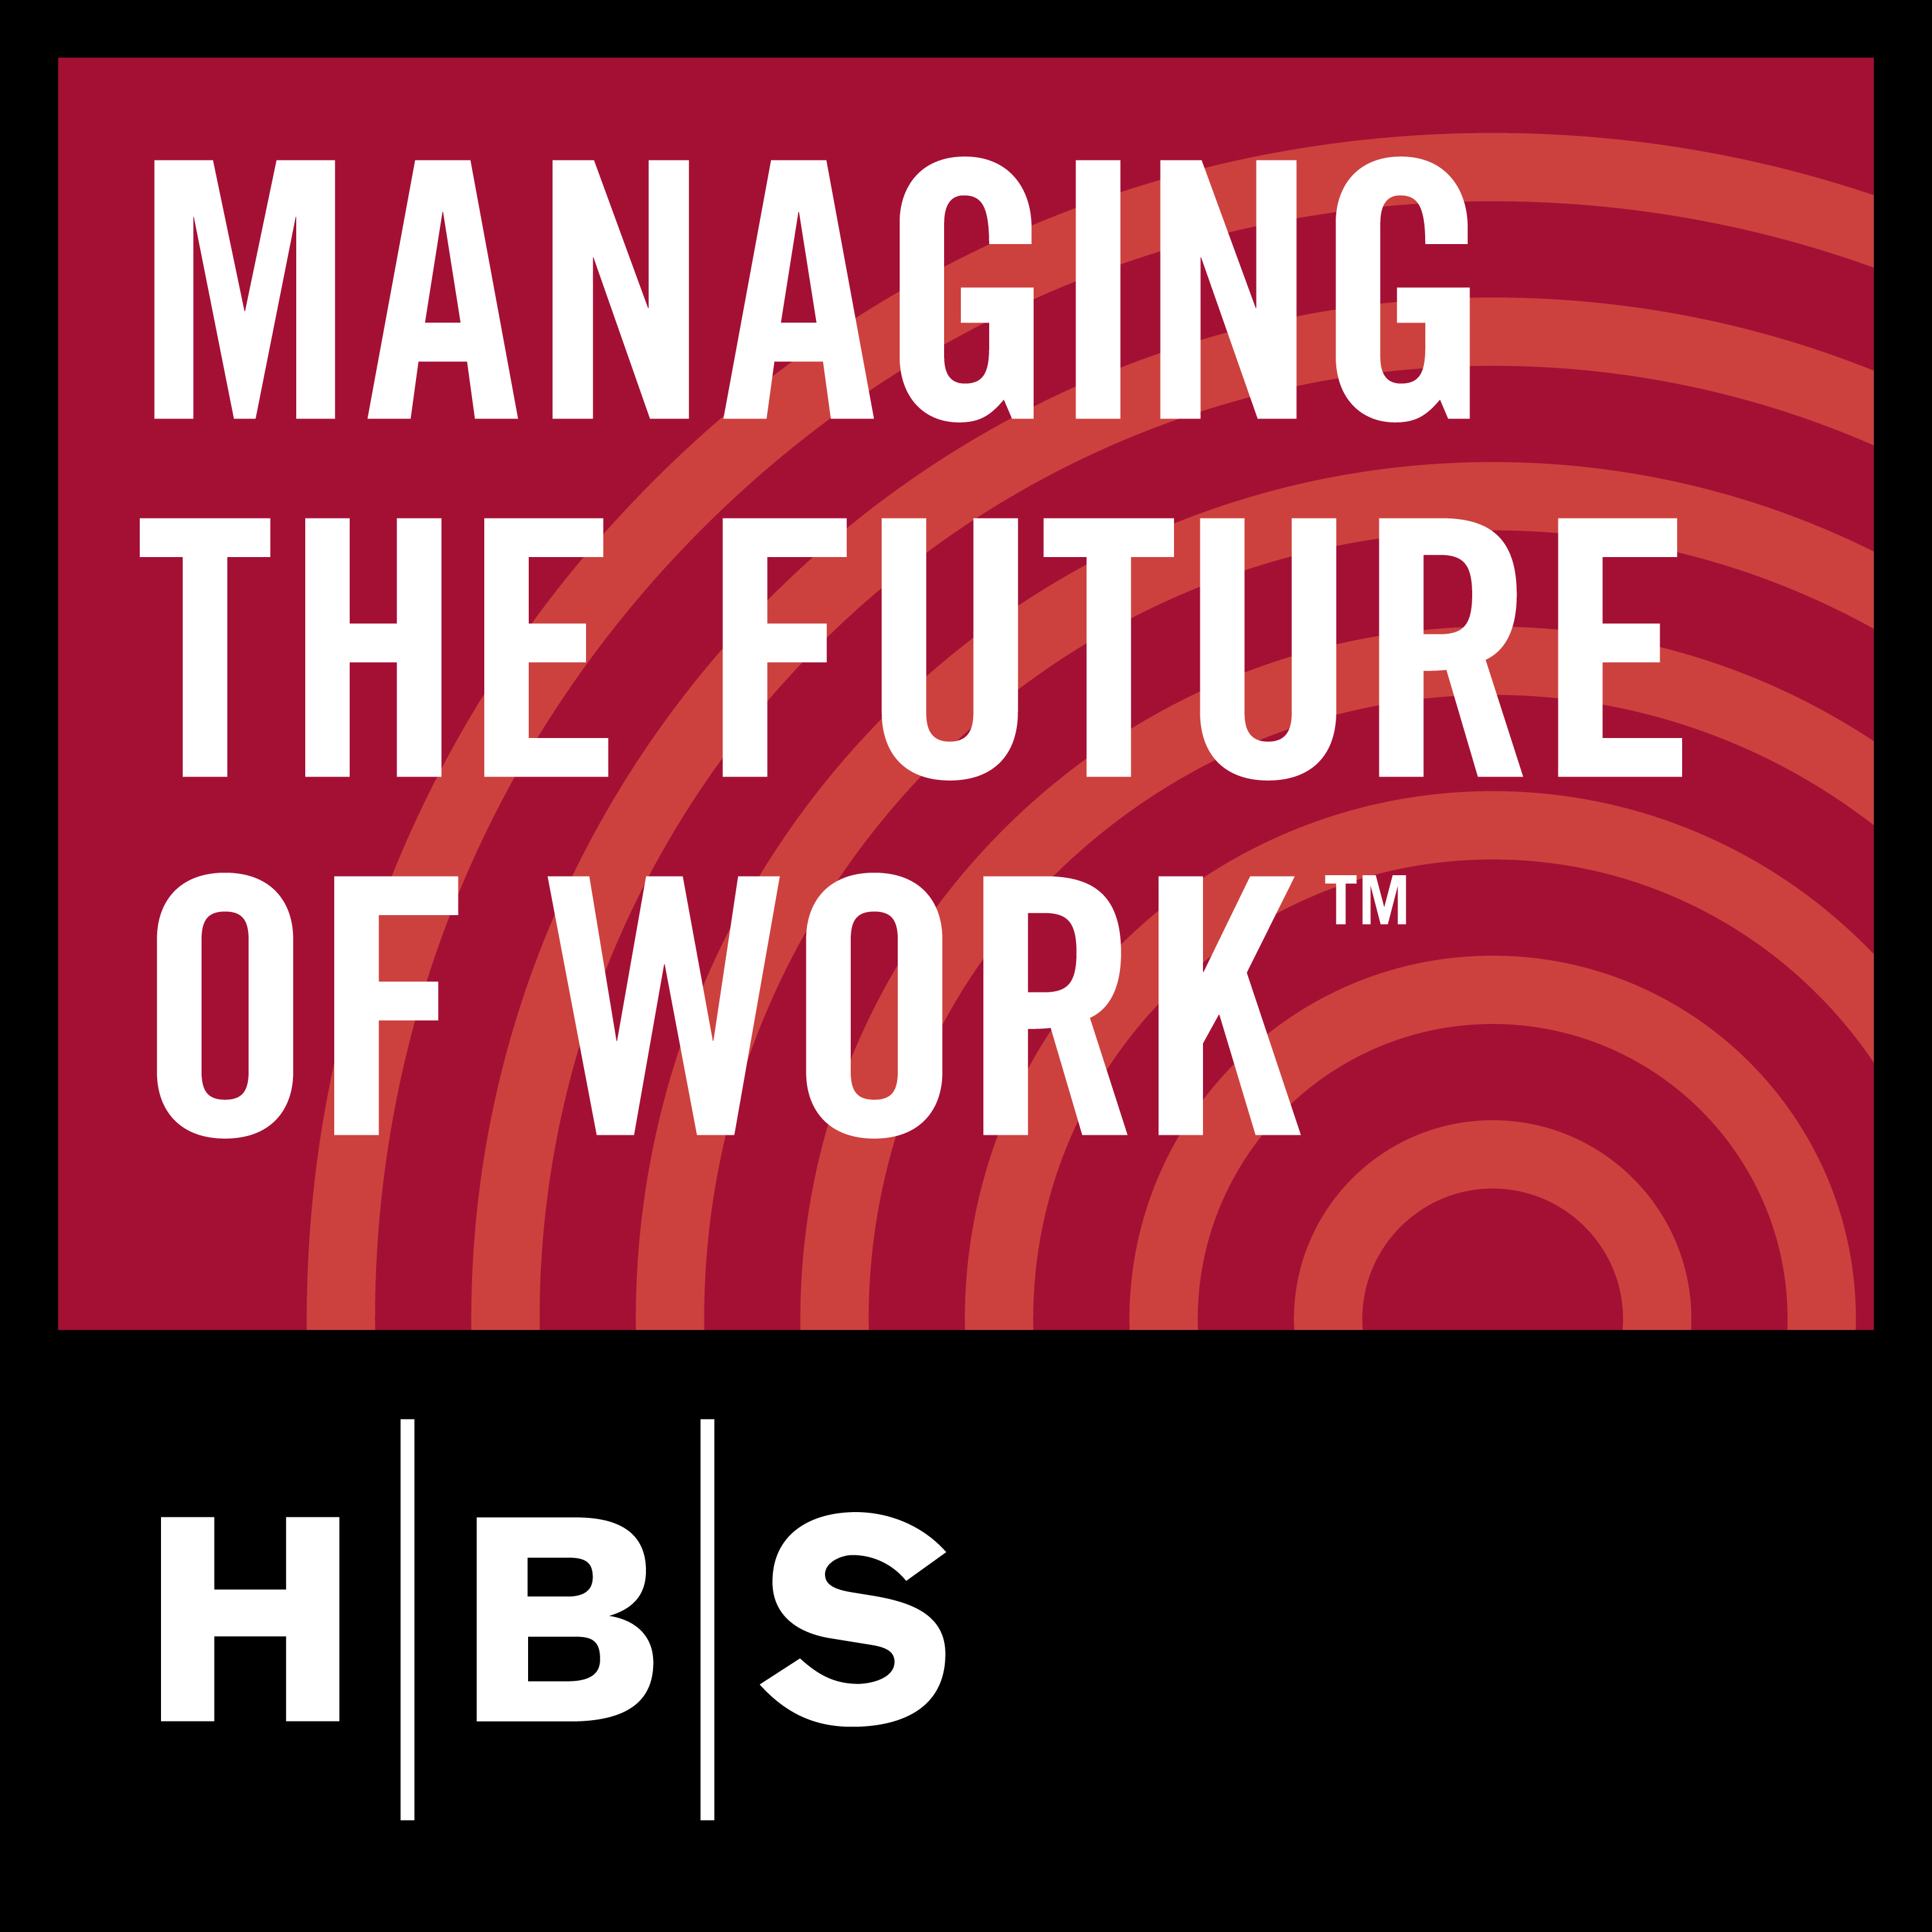 The Caring Company - Managing the Future of Work - Harvard Business School